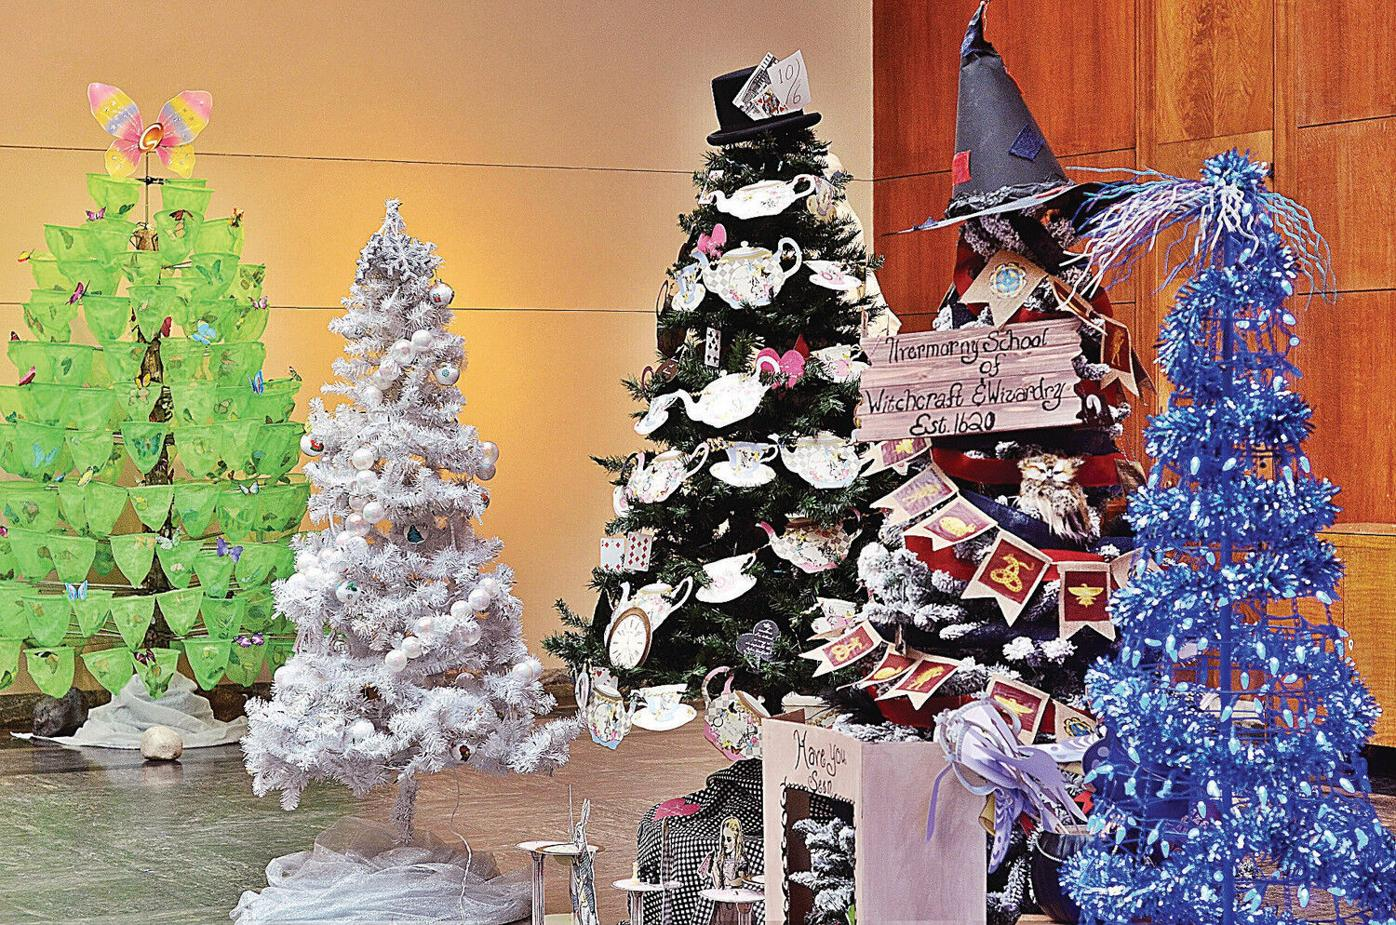 Festival of Trees: A holiday tradition